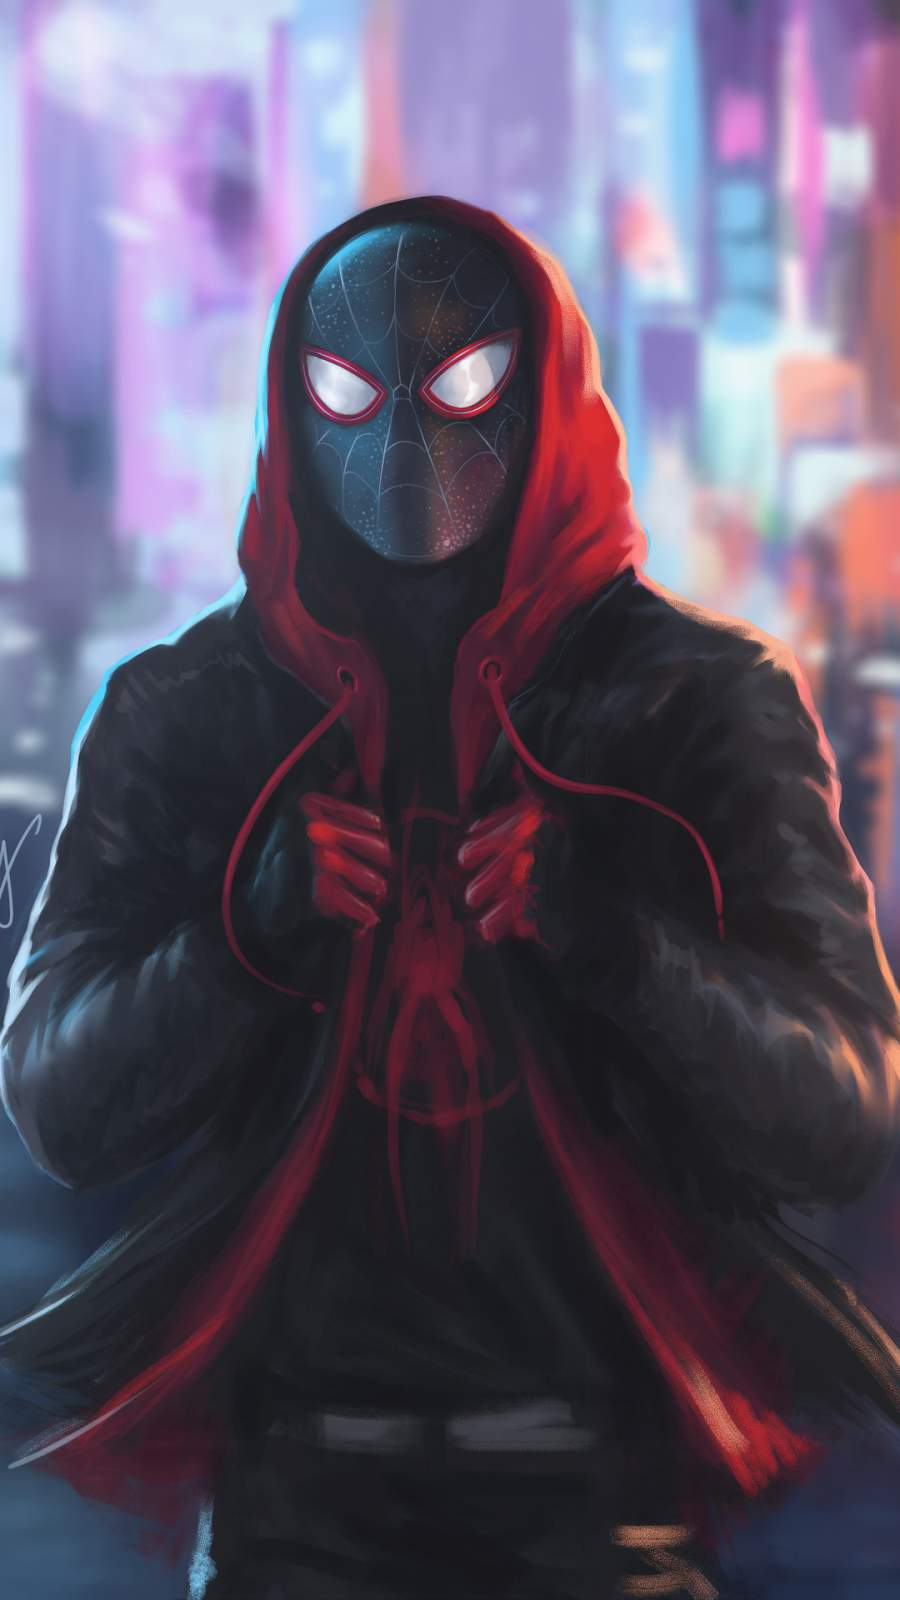 Miles Morales Spiderman in Hoodie iPhone Wallpaper